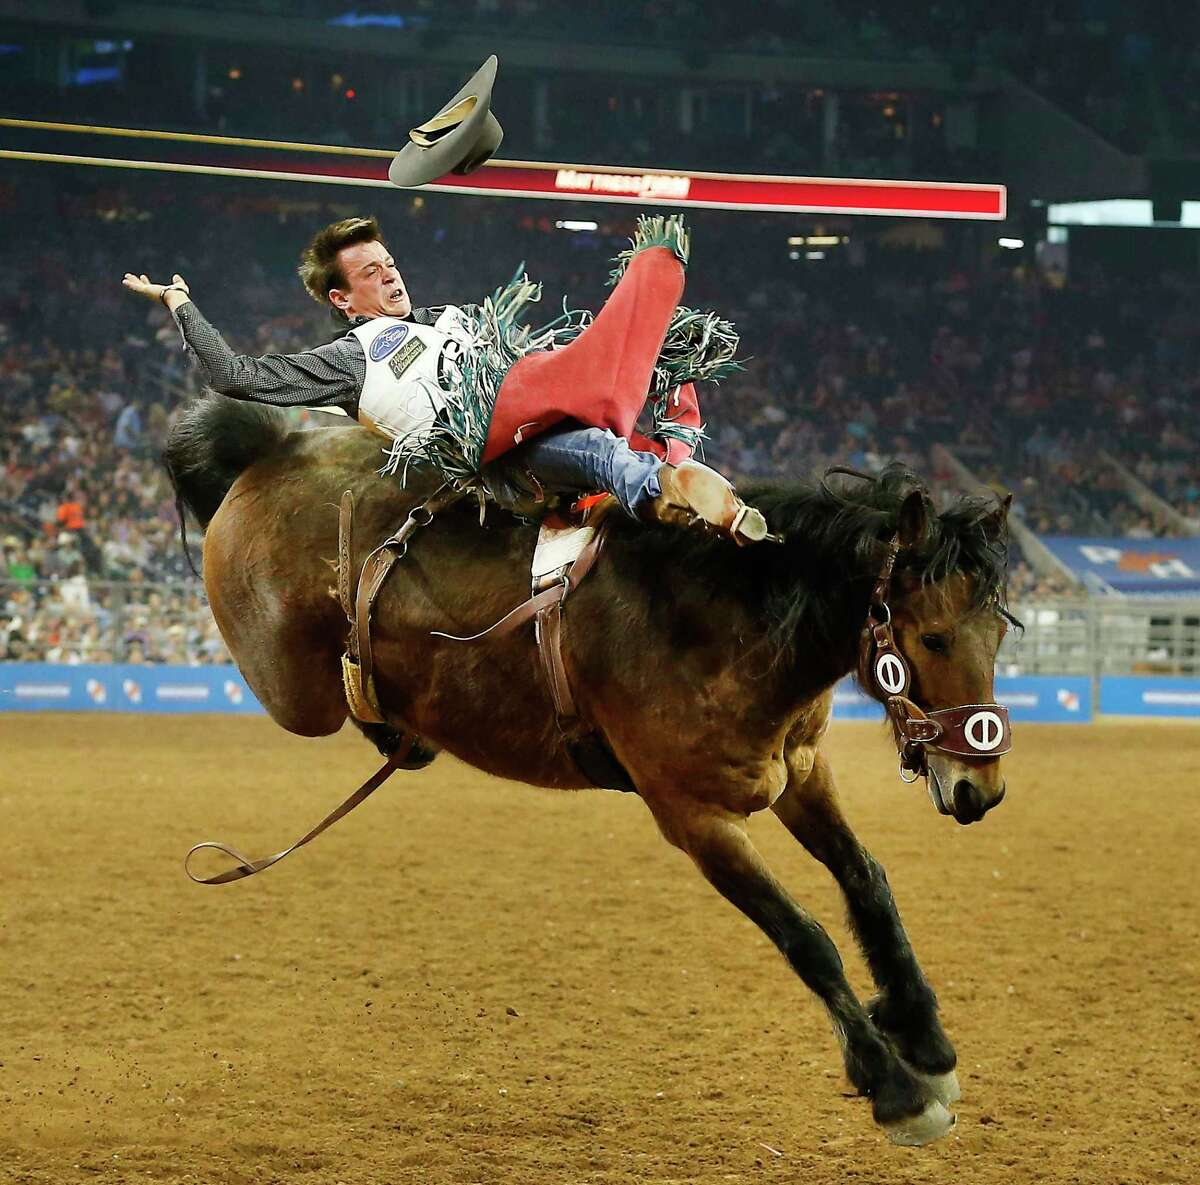 Tim O'Connell performs during RodeoHouston Super Shootout: North America's Champions action Sunday, March 18, 2018, in Houston. ( Steve Gonzales / Houston Chronicle )